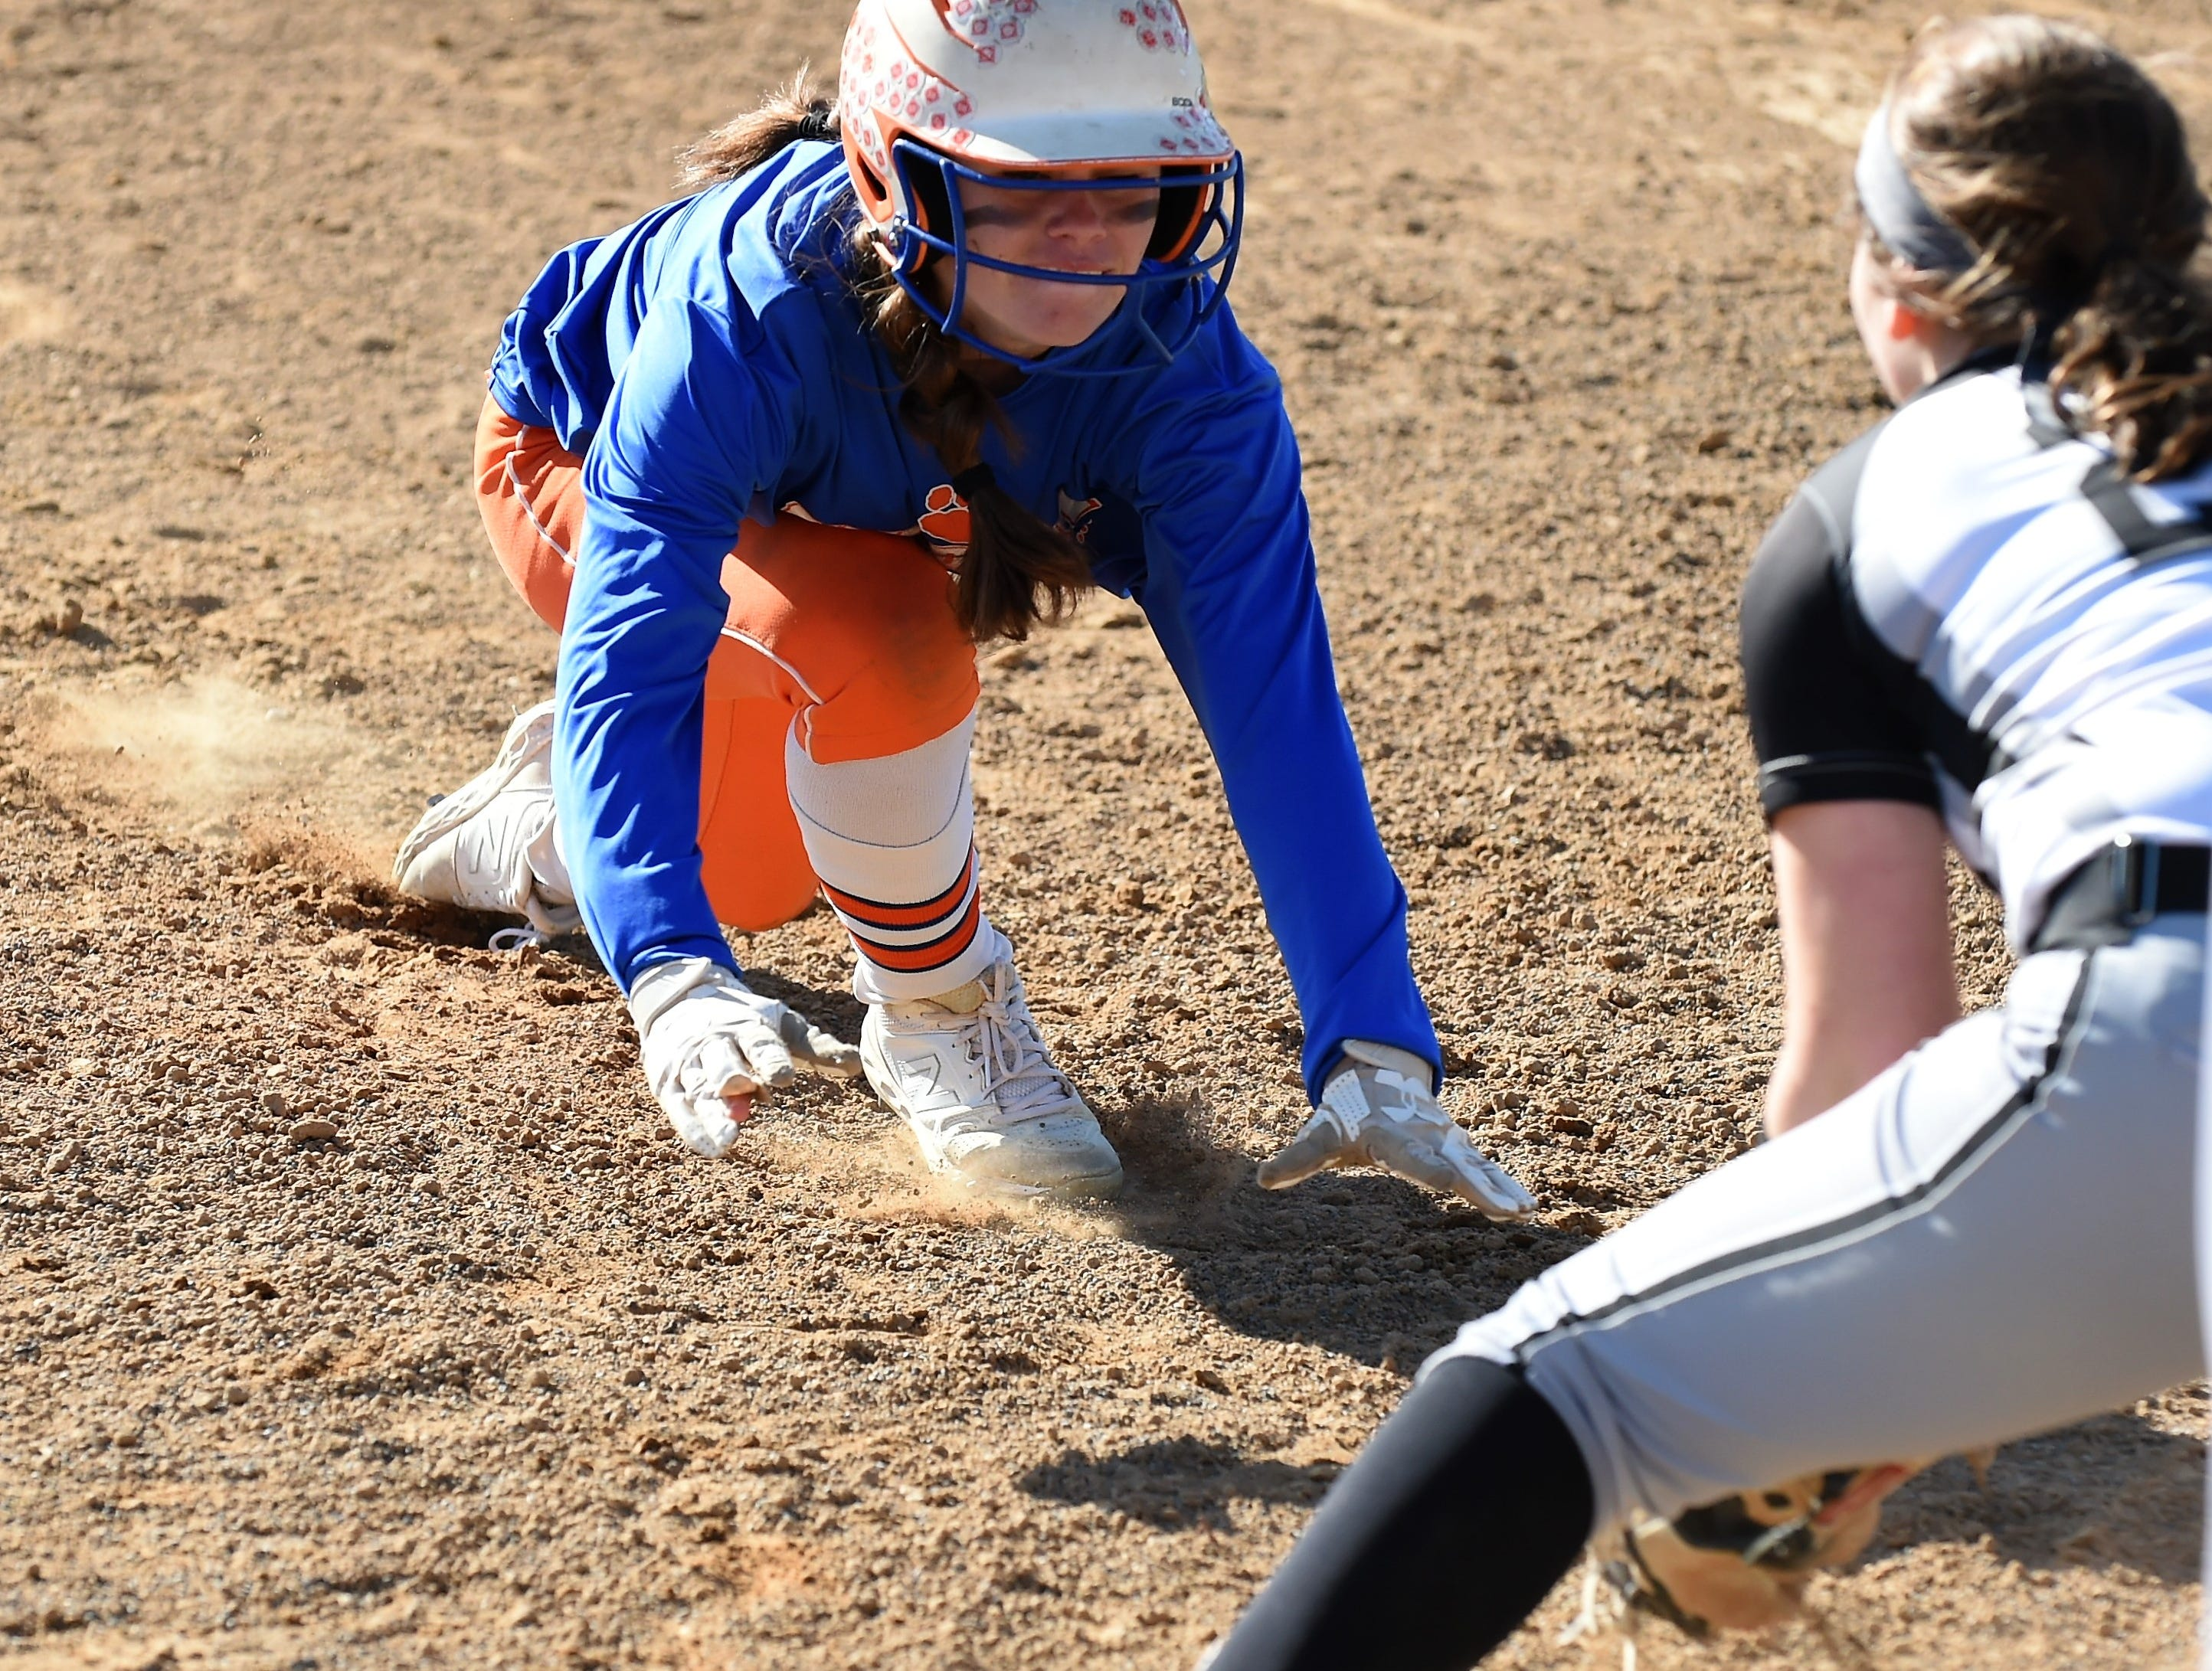 Delmar outfielder Paige Lynch gets caught stealing and tries to slide into first base on Monday, April 15, 2019. The Wildcats defeated Padua Academy, 6-2.